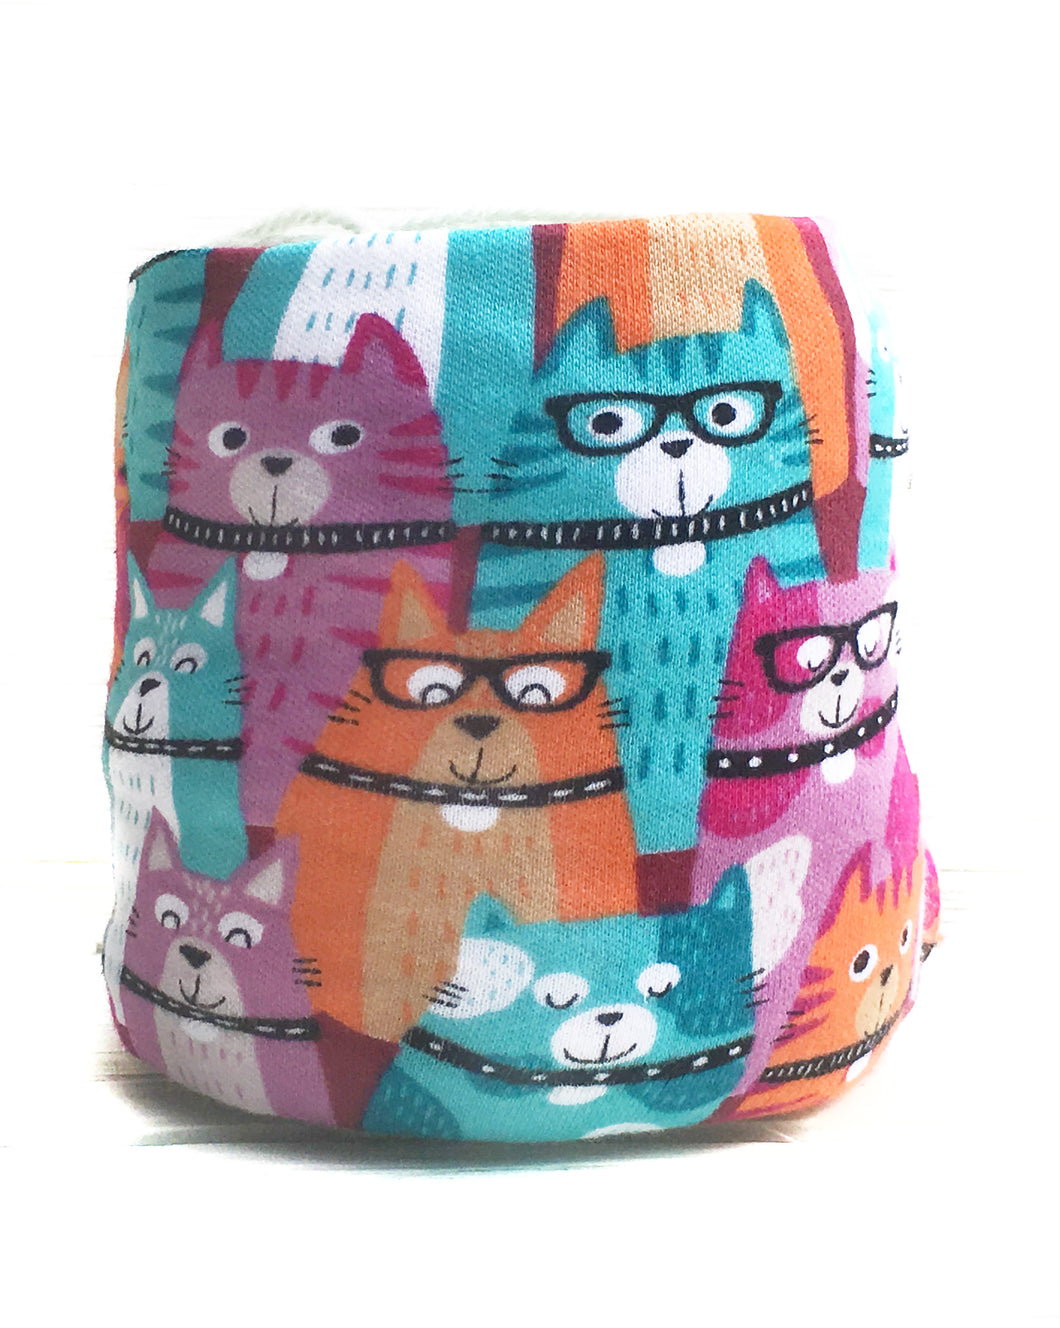 House of Cats Yarn Cozy